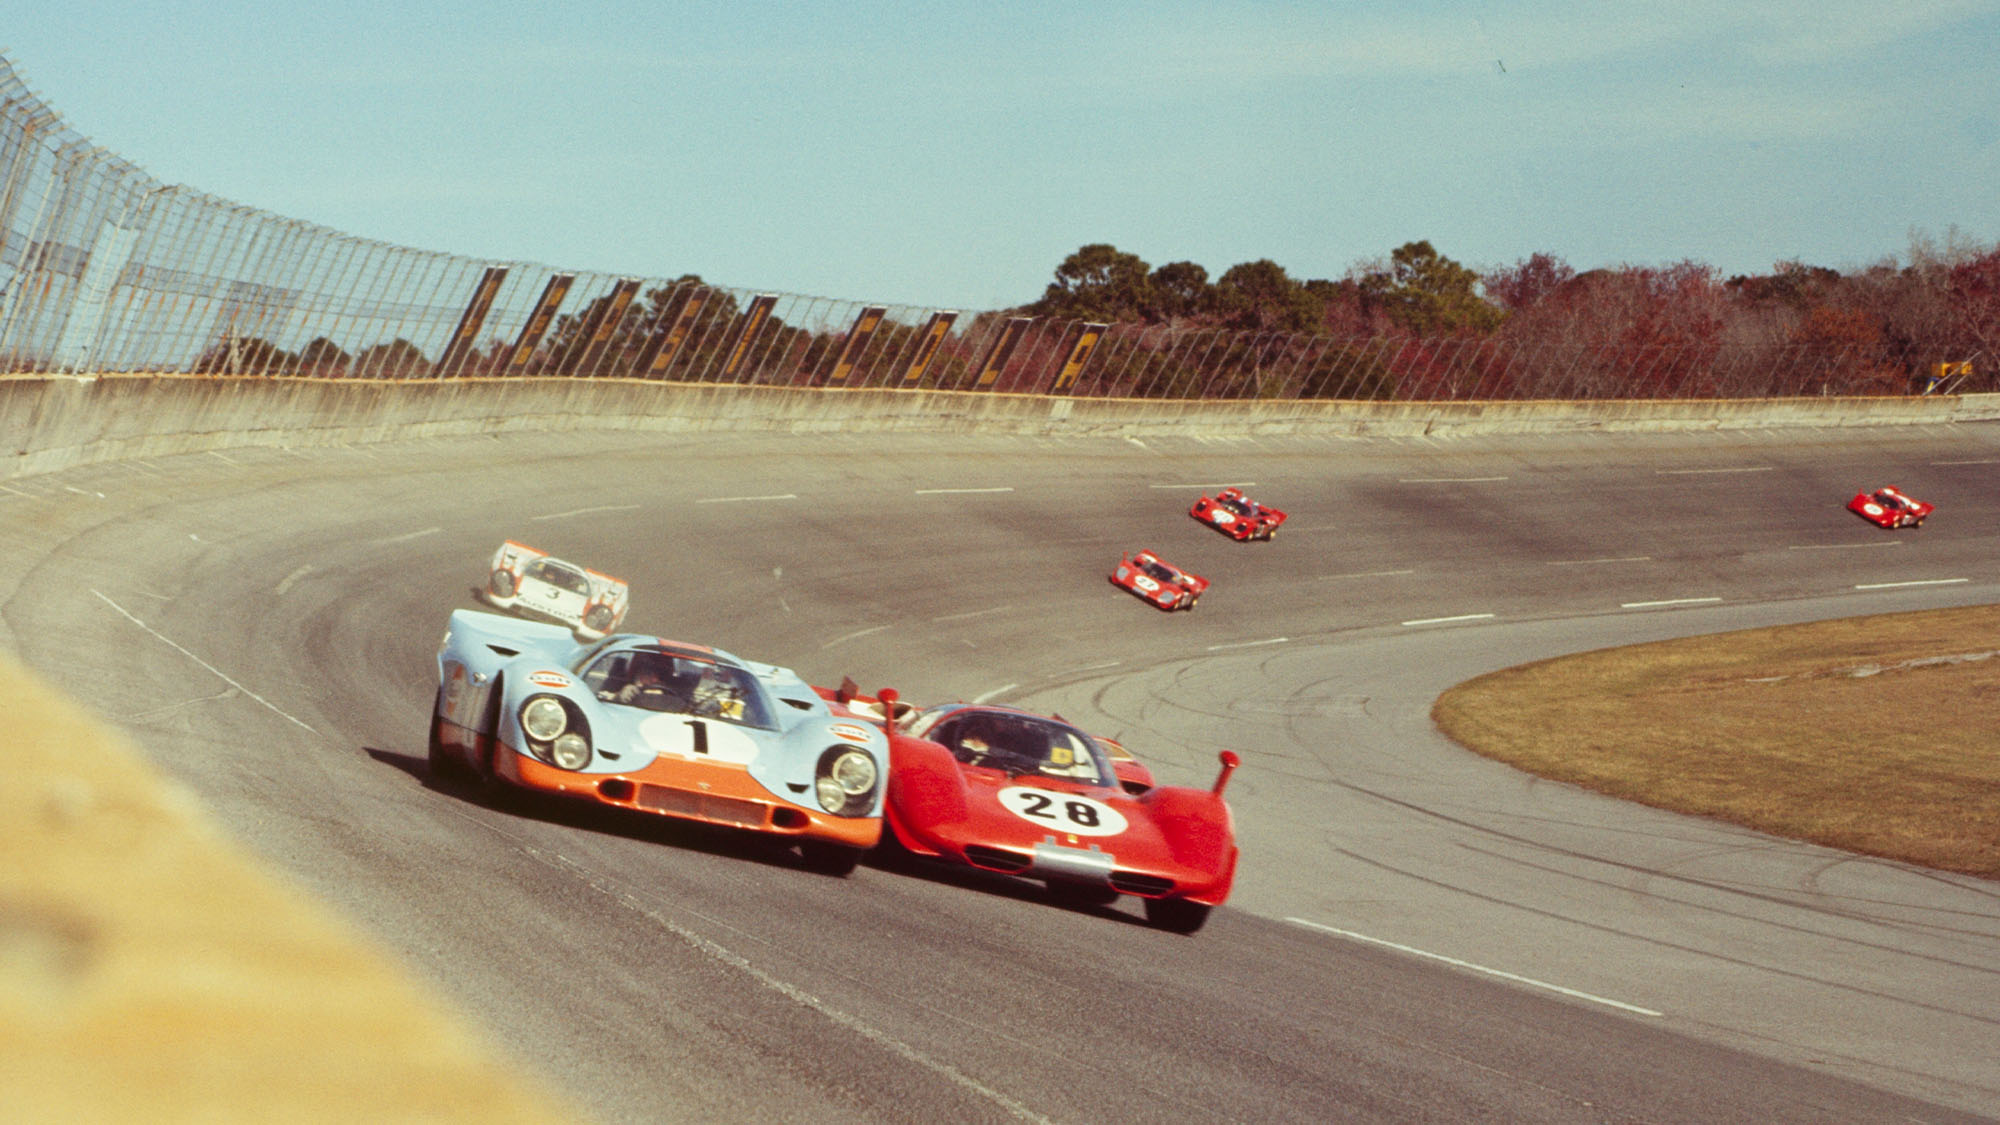 UNITED STATES - FEBRUARY 02: Daytona 24 Hour Race - 1970. Jo Siffert; Brian Redman drive their J.W Engineering Gulf Porsche 917 K against Mario Andretti; Arturo Merzario; Jacky Ickx in their Ferrari 512 S. (Photo by The Enthusiast Network via Getty Images/Getty Images)